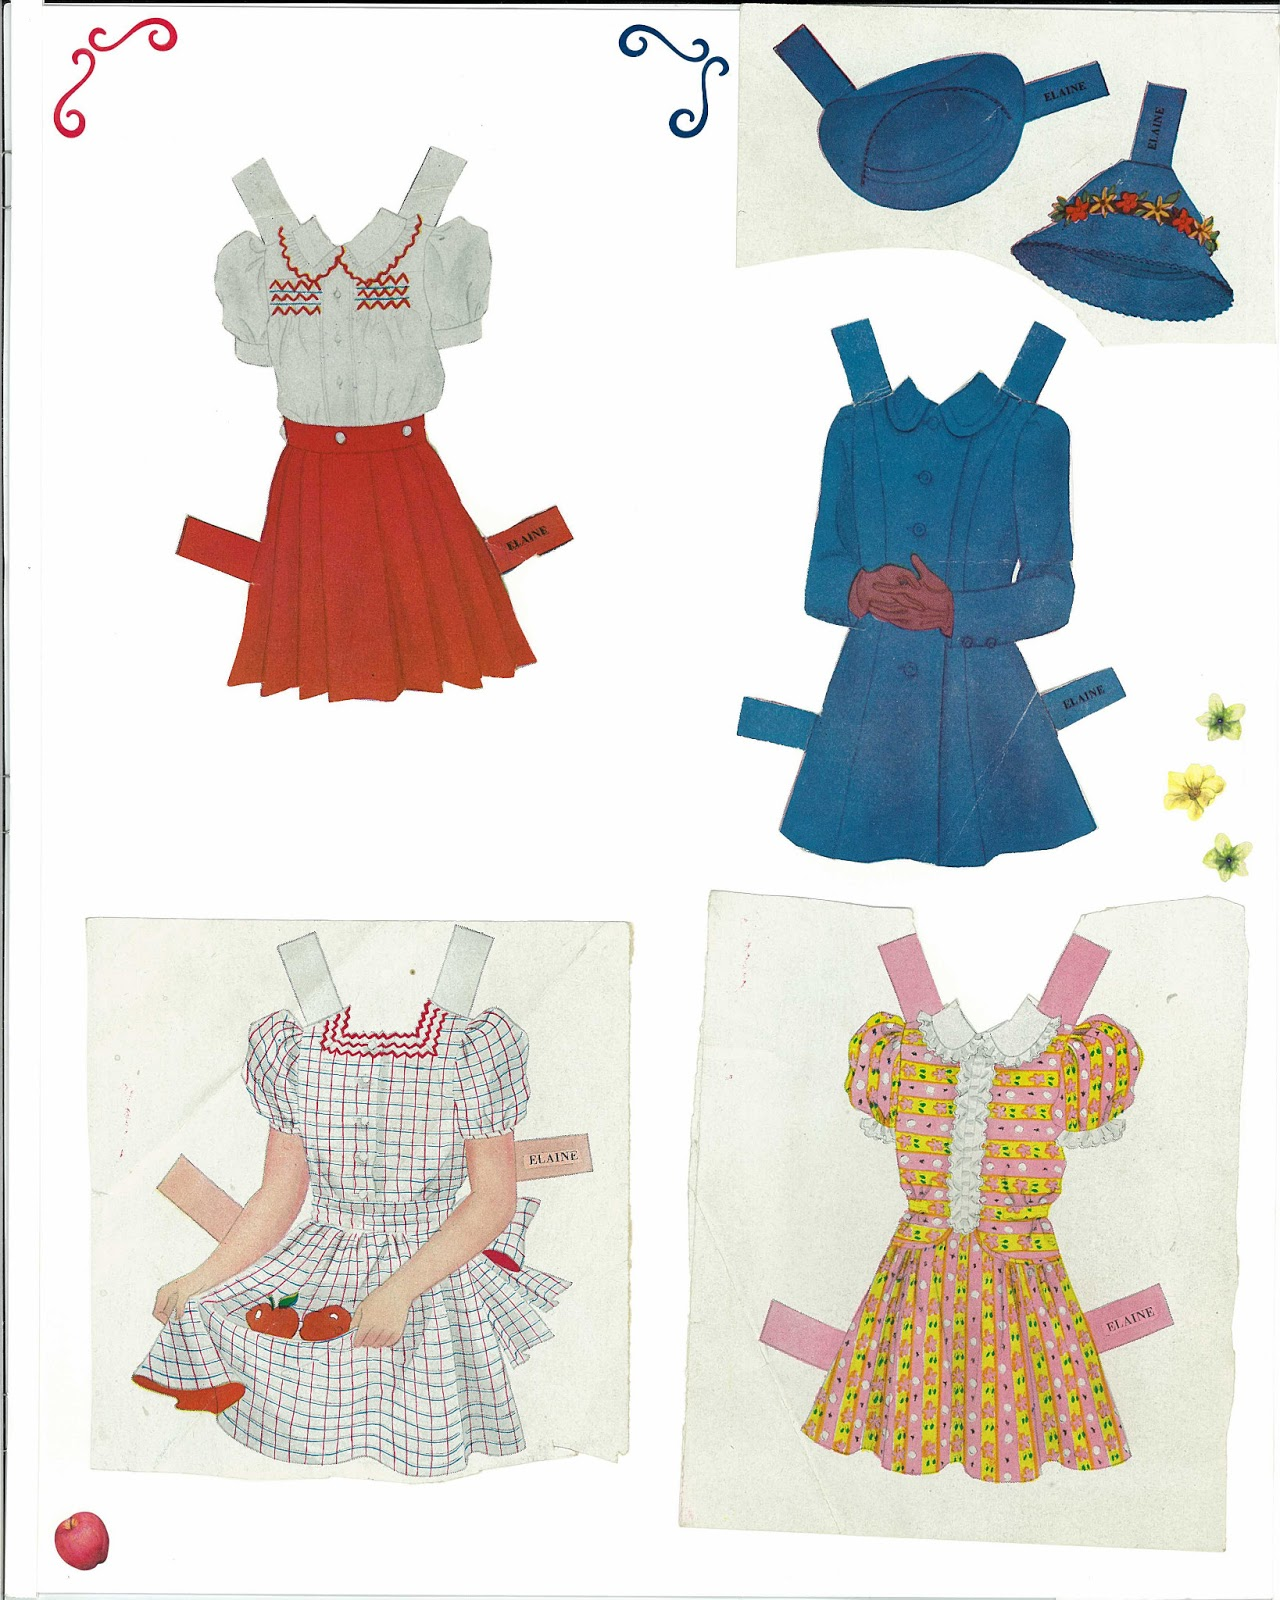 Miss Missy Paper Dolls: Joan and Elaine